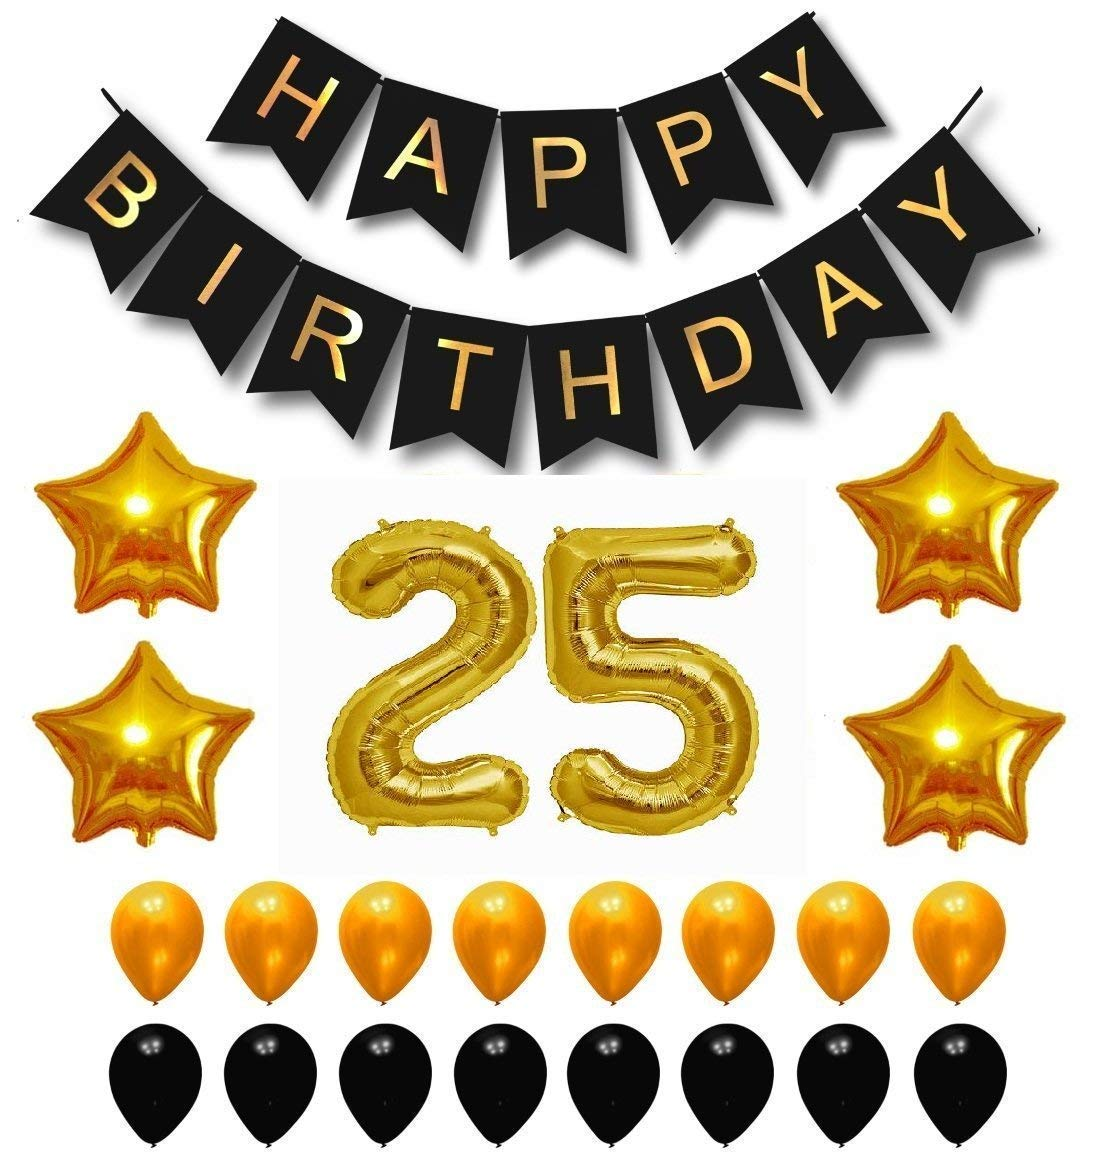 Teenager Birthday Celebration Event Concepts Can Be Enjoyable For Every Person